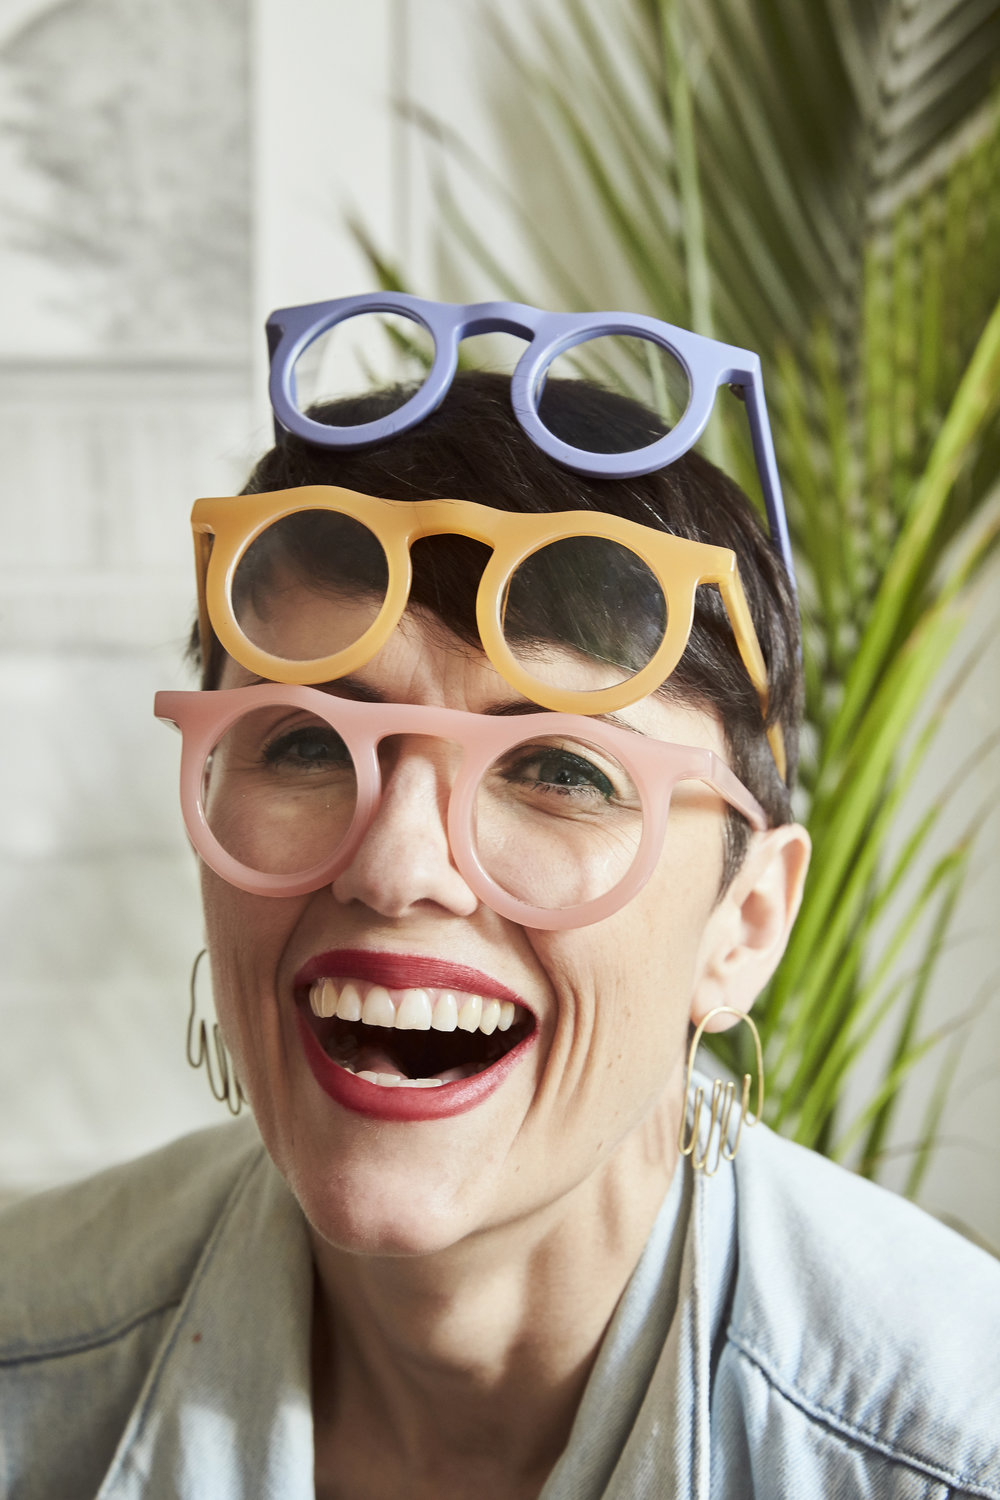 Carla Robertson modeling Lind optical frames (beautifully)